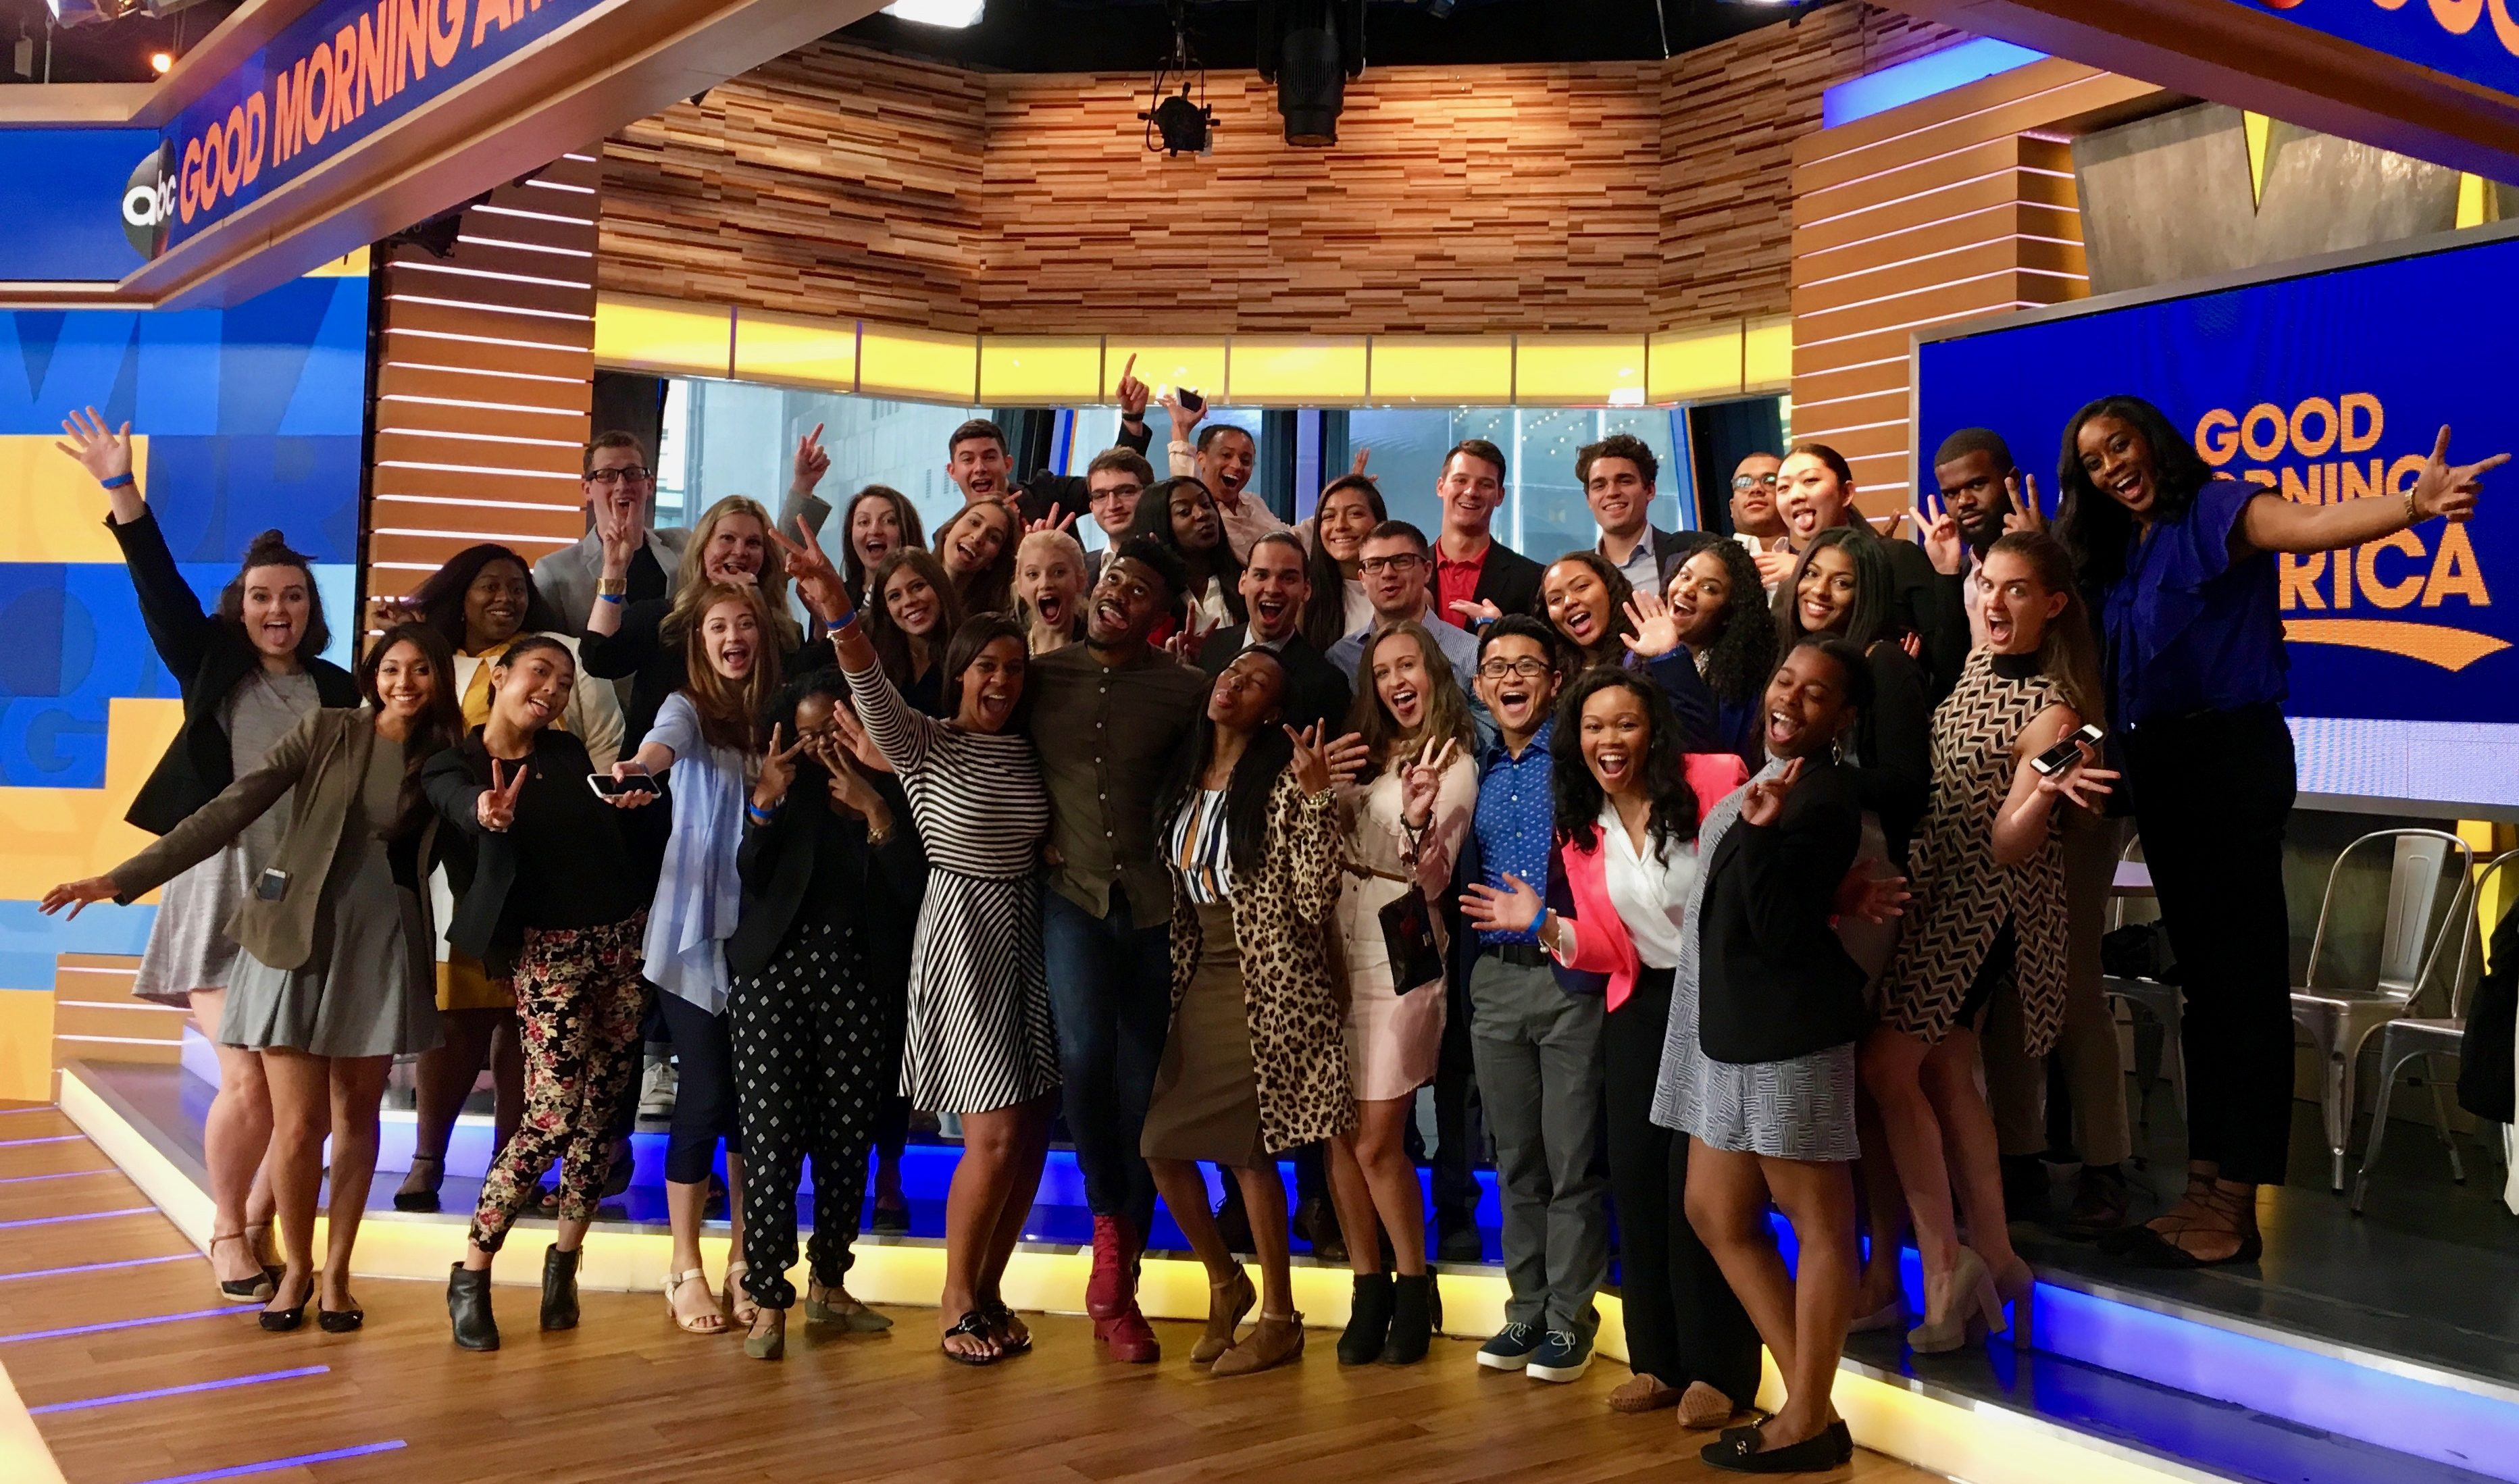 2017 IRTS Fellows and IRTS staff at Good Morning America with 2011 IRTS alum Eric Jones